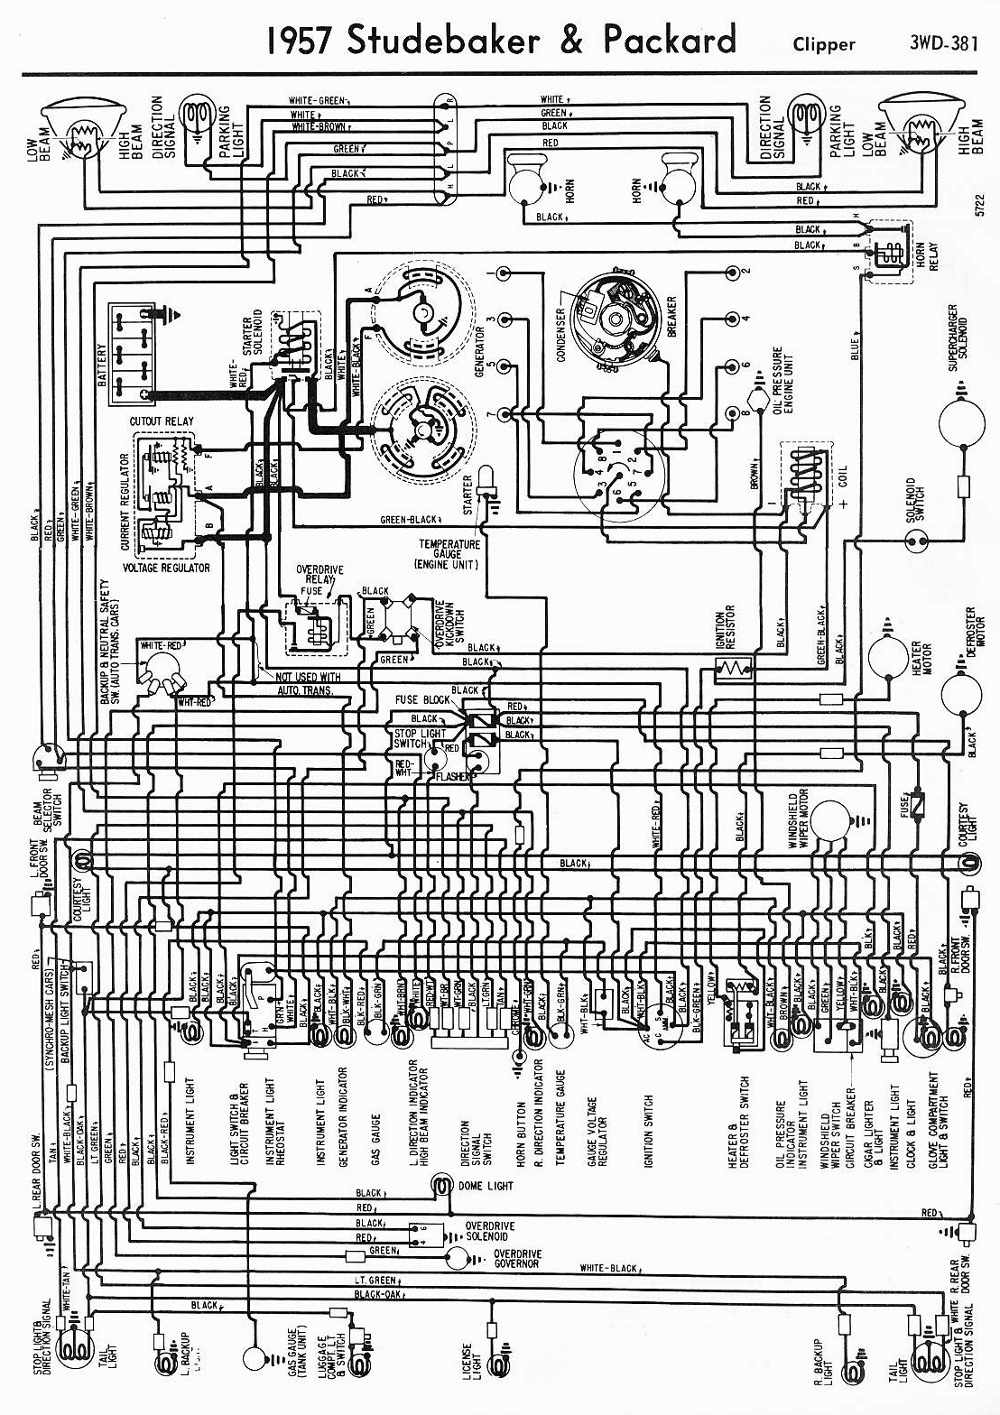 51 Studebaker Wiring Diagram Library Auto 1952 Packard Diagrams 911 1957 And Clipper 1959 Pickup